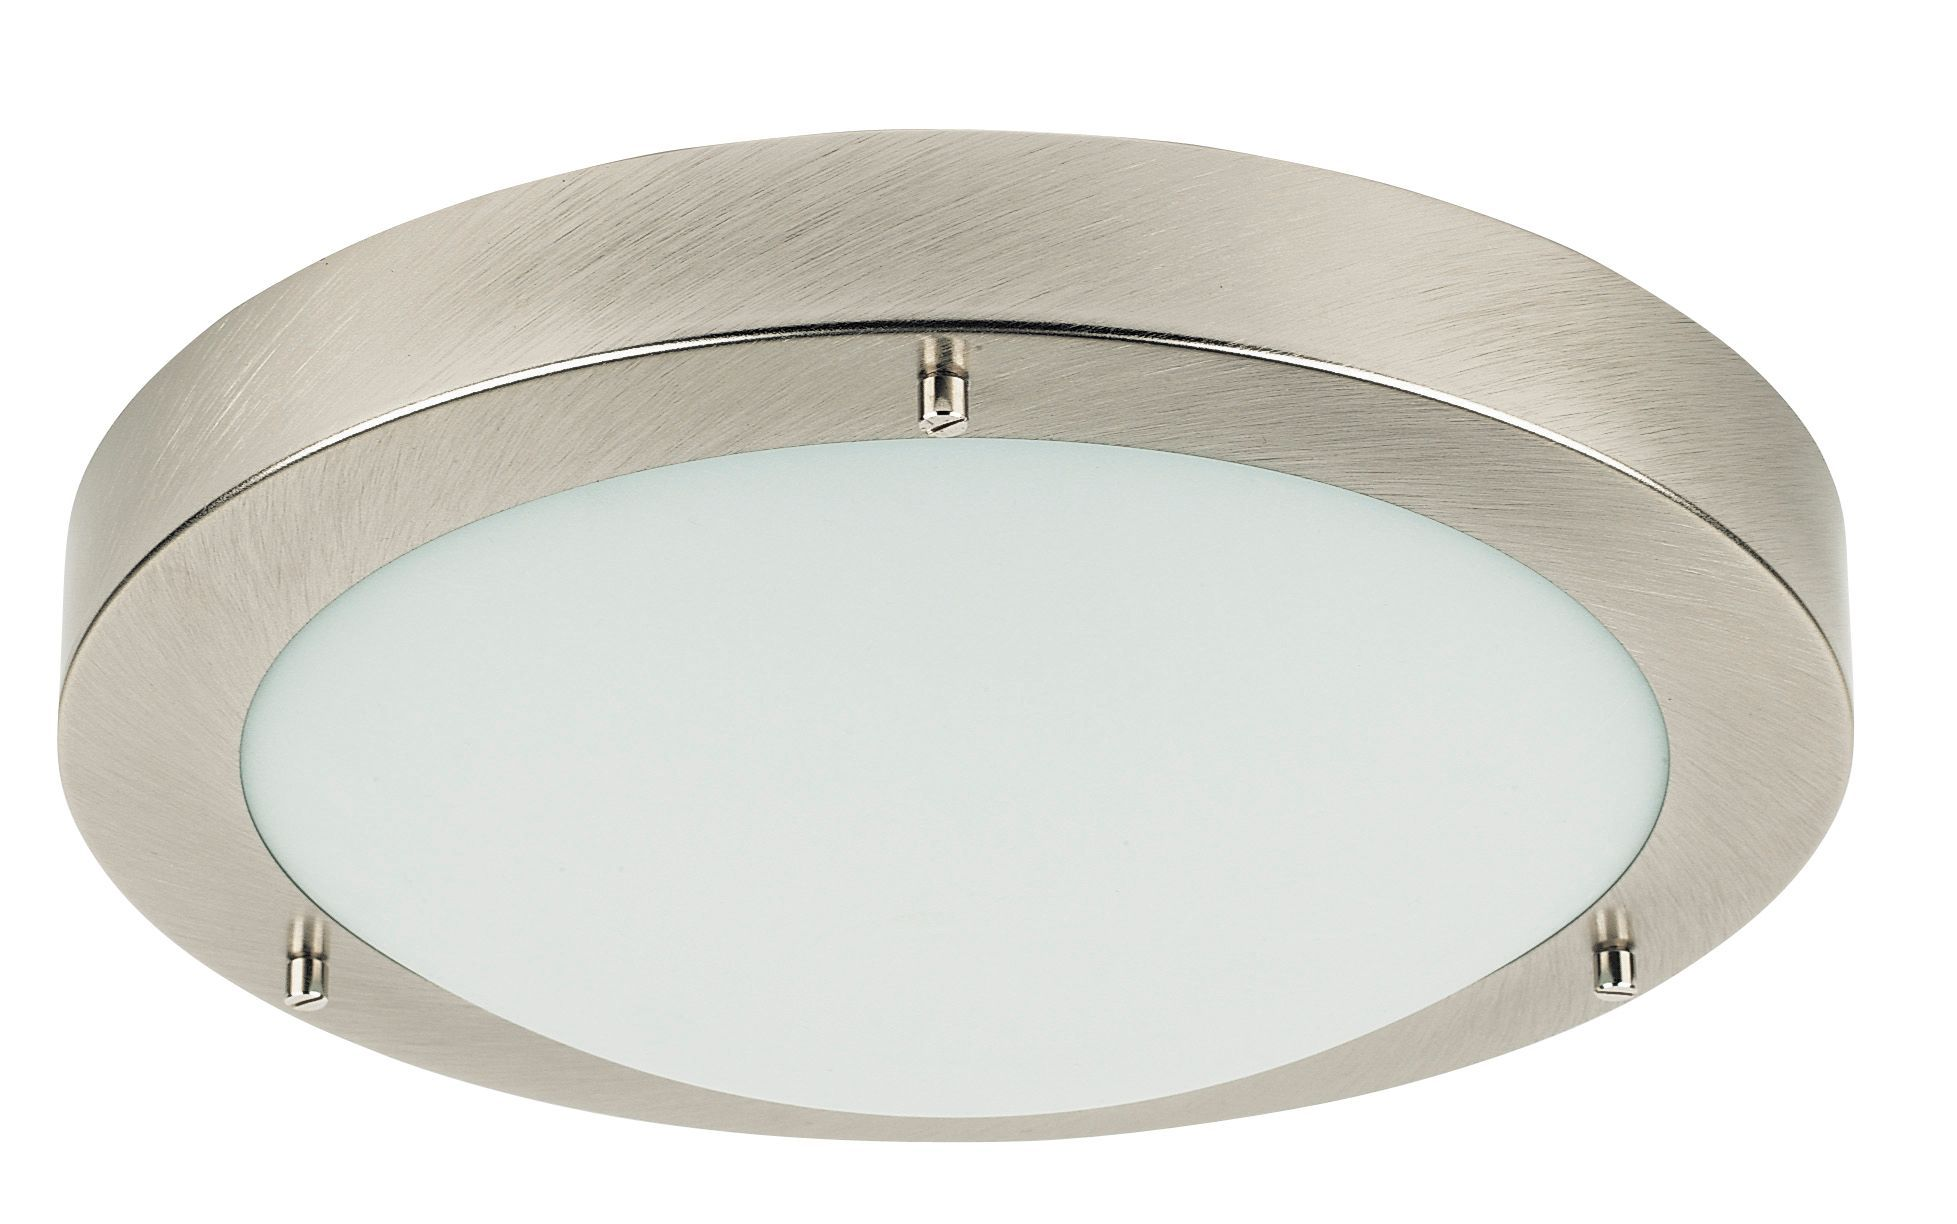 Portal Silver Brushed Chrome Effect Bathroom Flush Light Departments Diy At B Amp Q Bathroom Lighting Flush Lighting Bathroom Ceiling Light